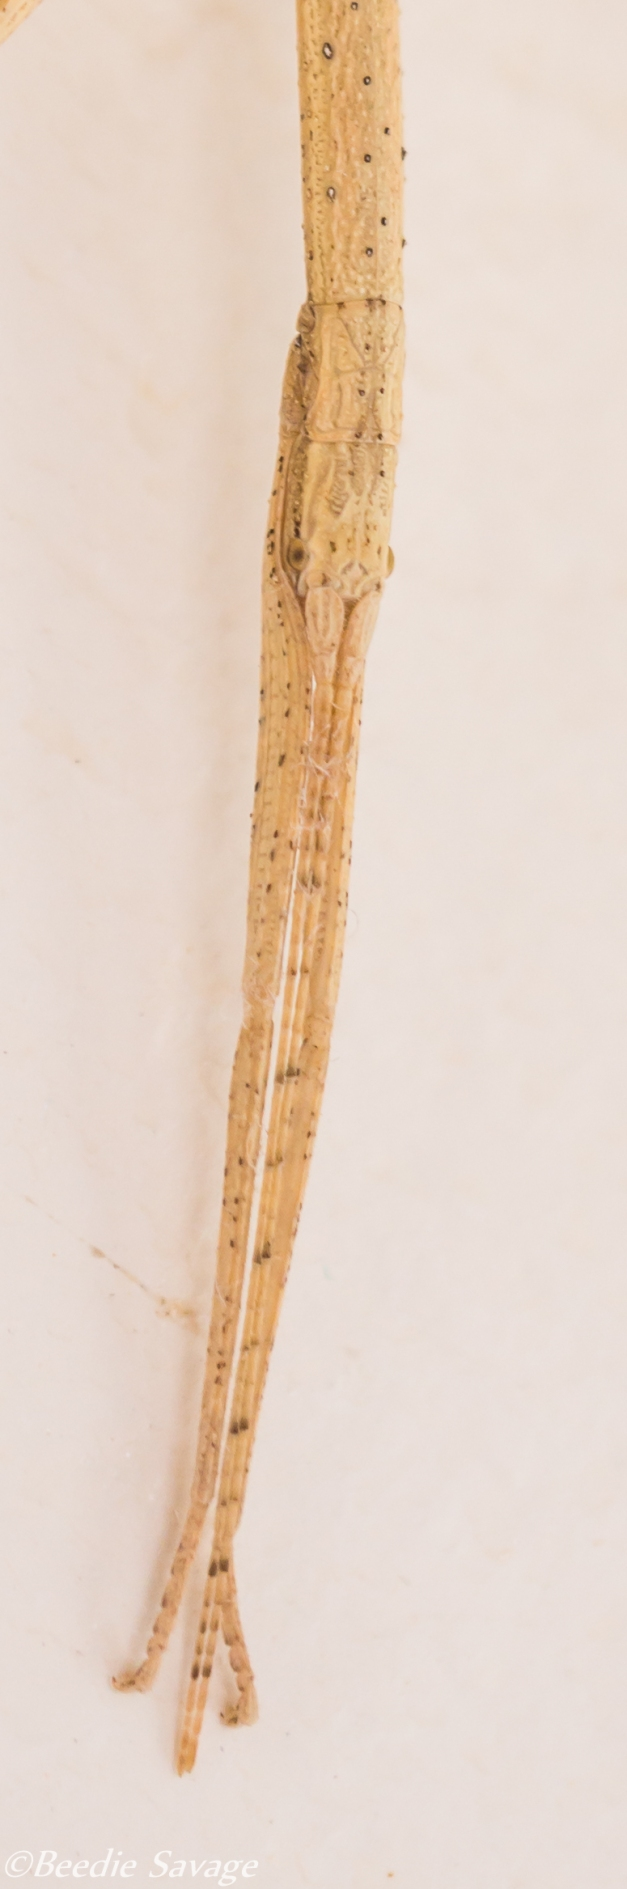 Head of a Stick Bug - Phasmatodea